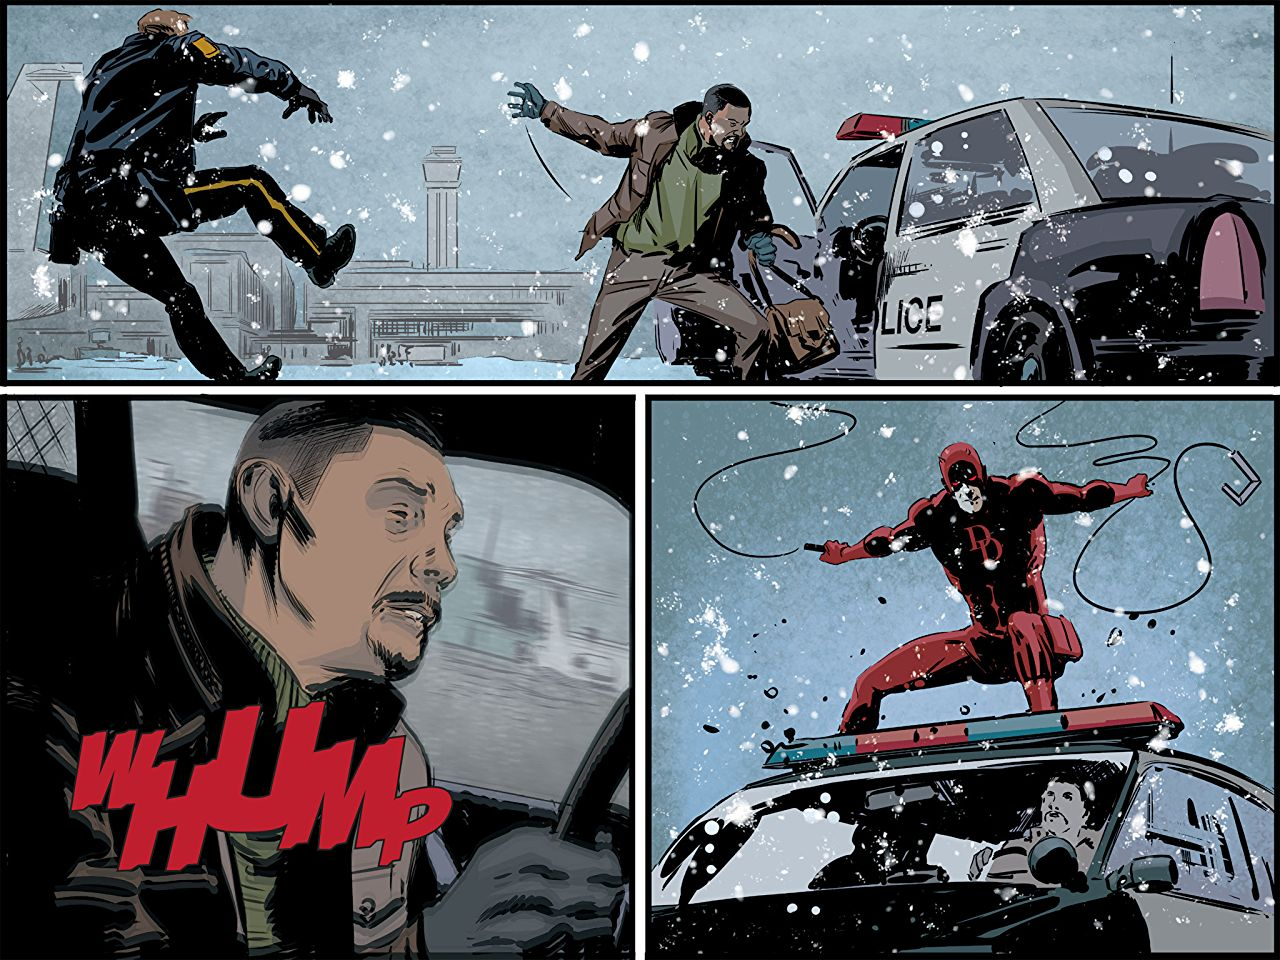 From  Daredevil: Road Warrior.